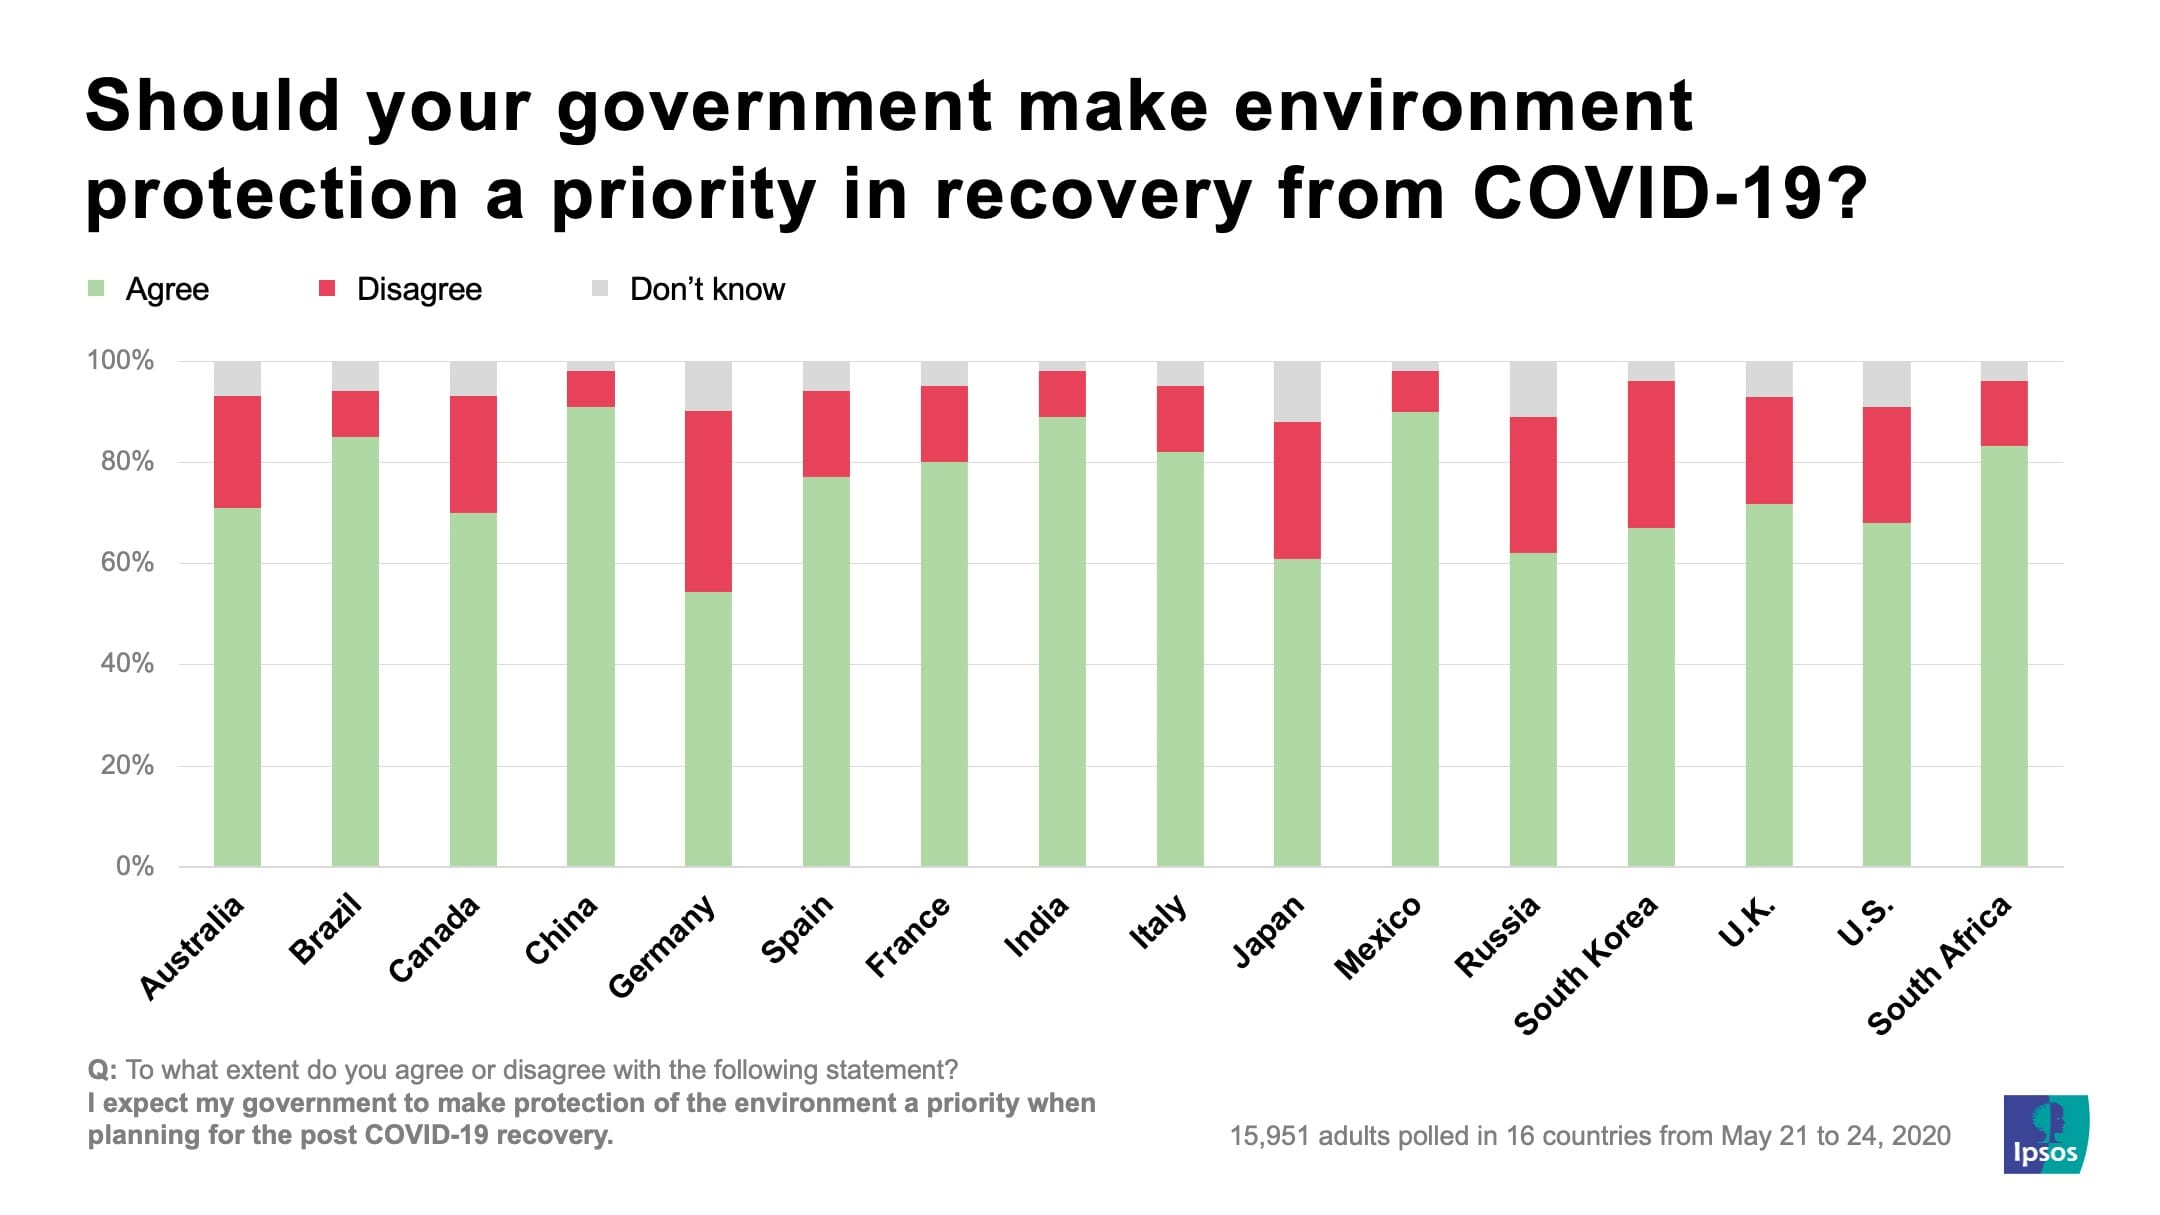 Should your government make environment protection a priority in recovery from COVID-19? | Ipsos